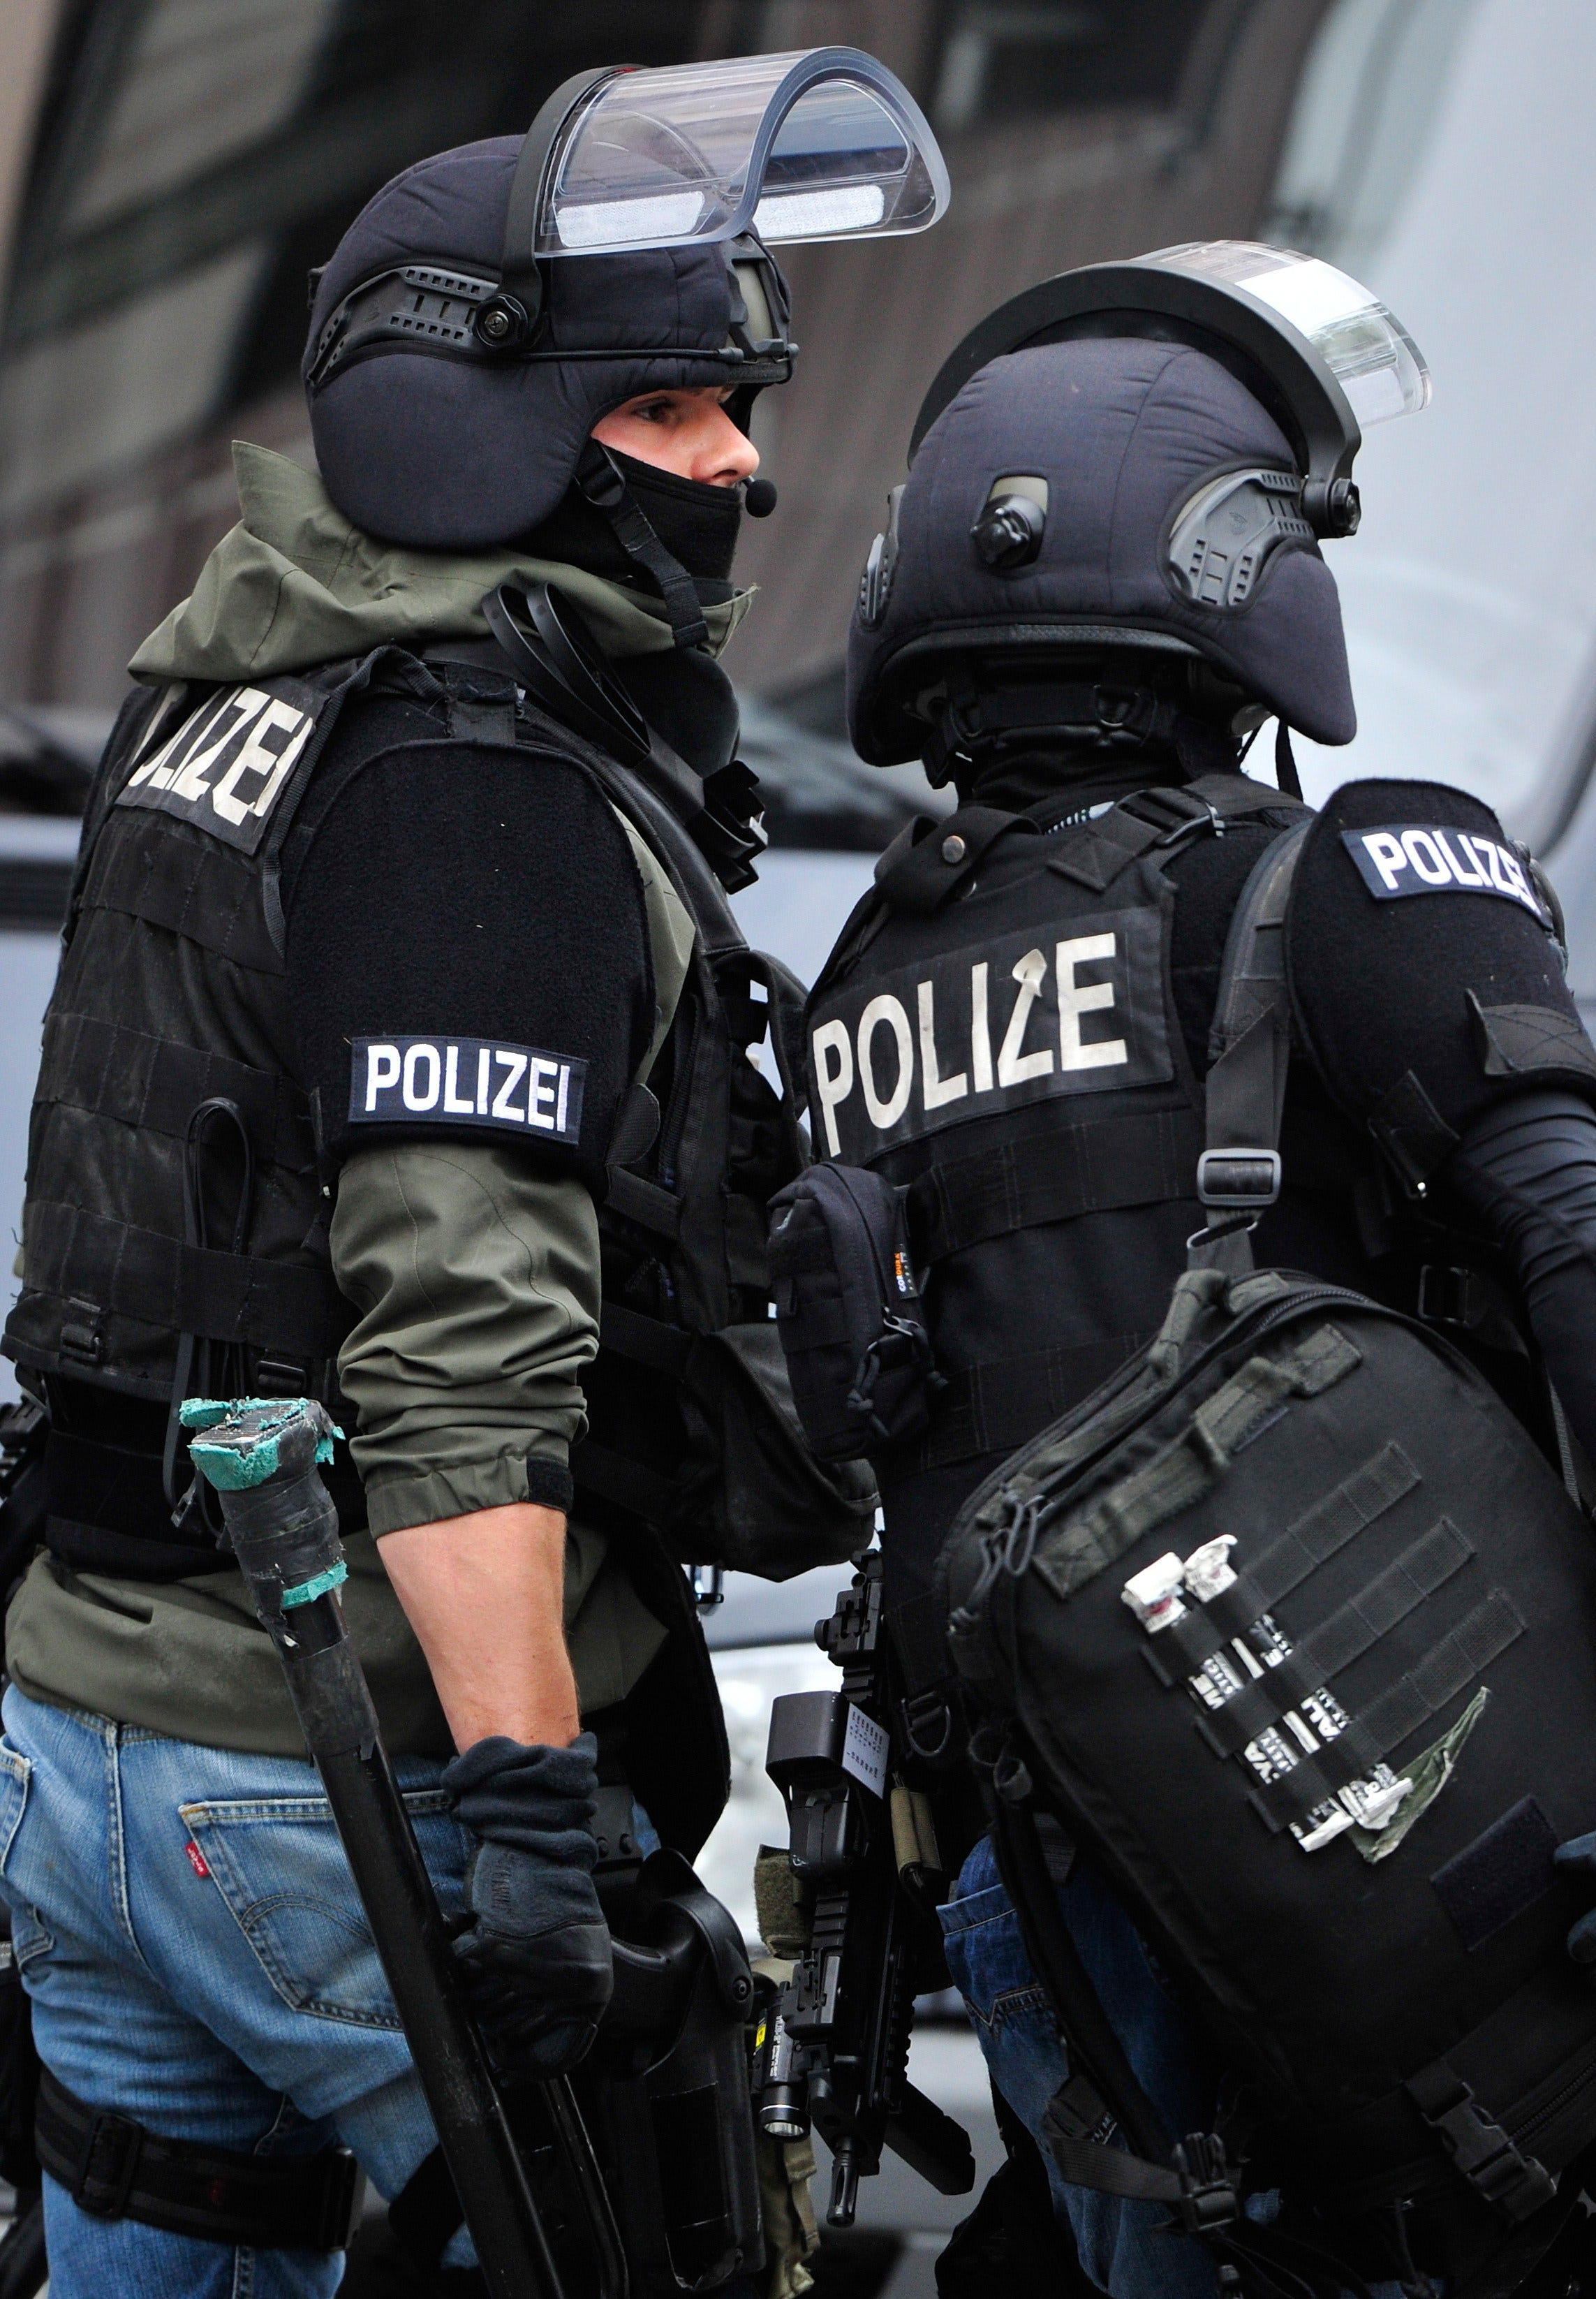 German special police forces leave the scene of a hostage taking in the town hall in Ingolstadt, Germany, on August 19, 2013.